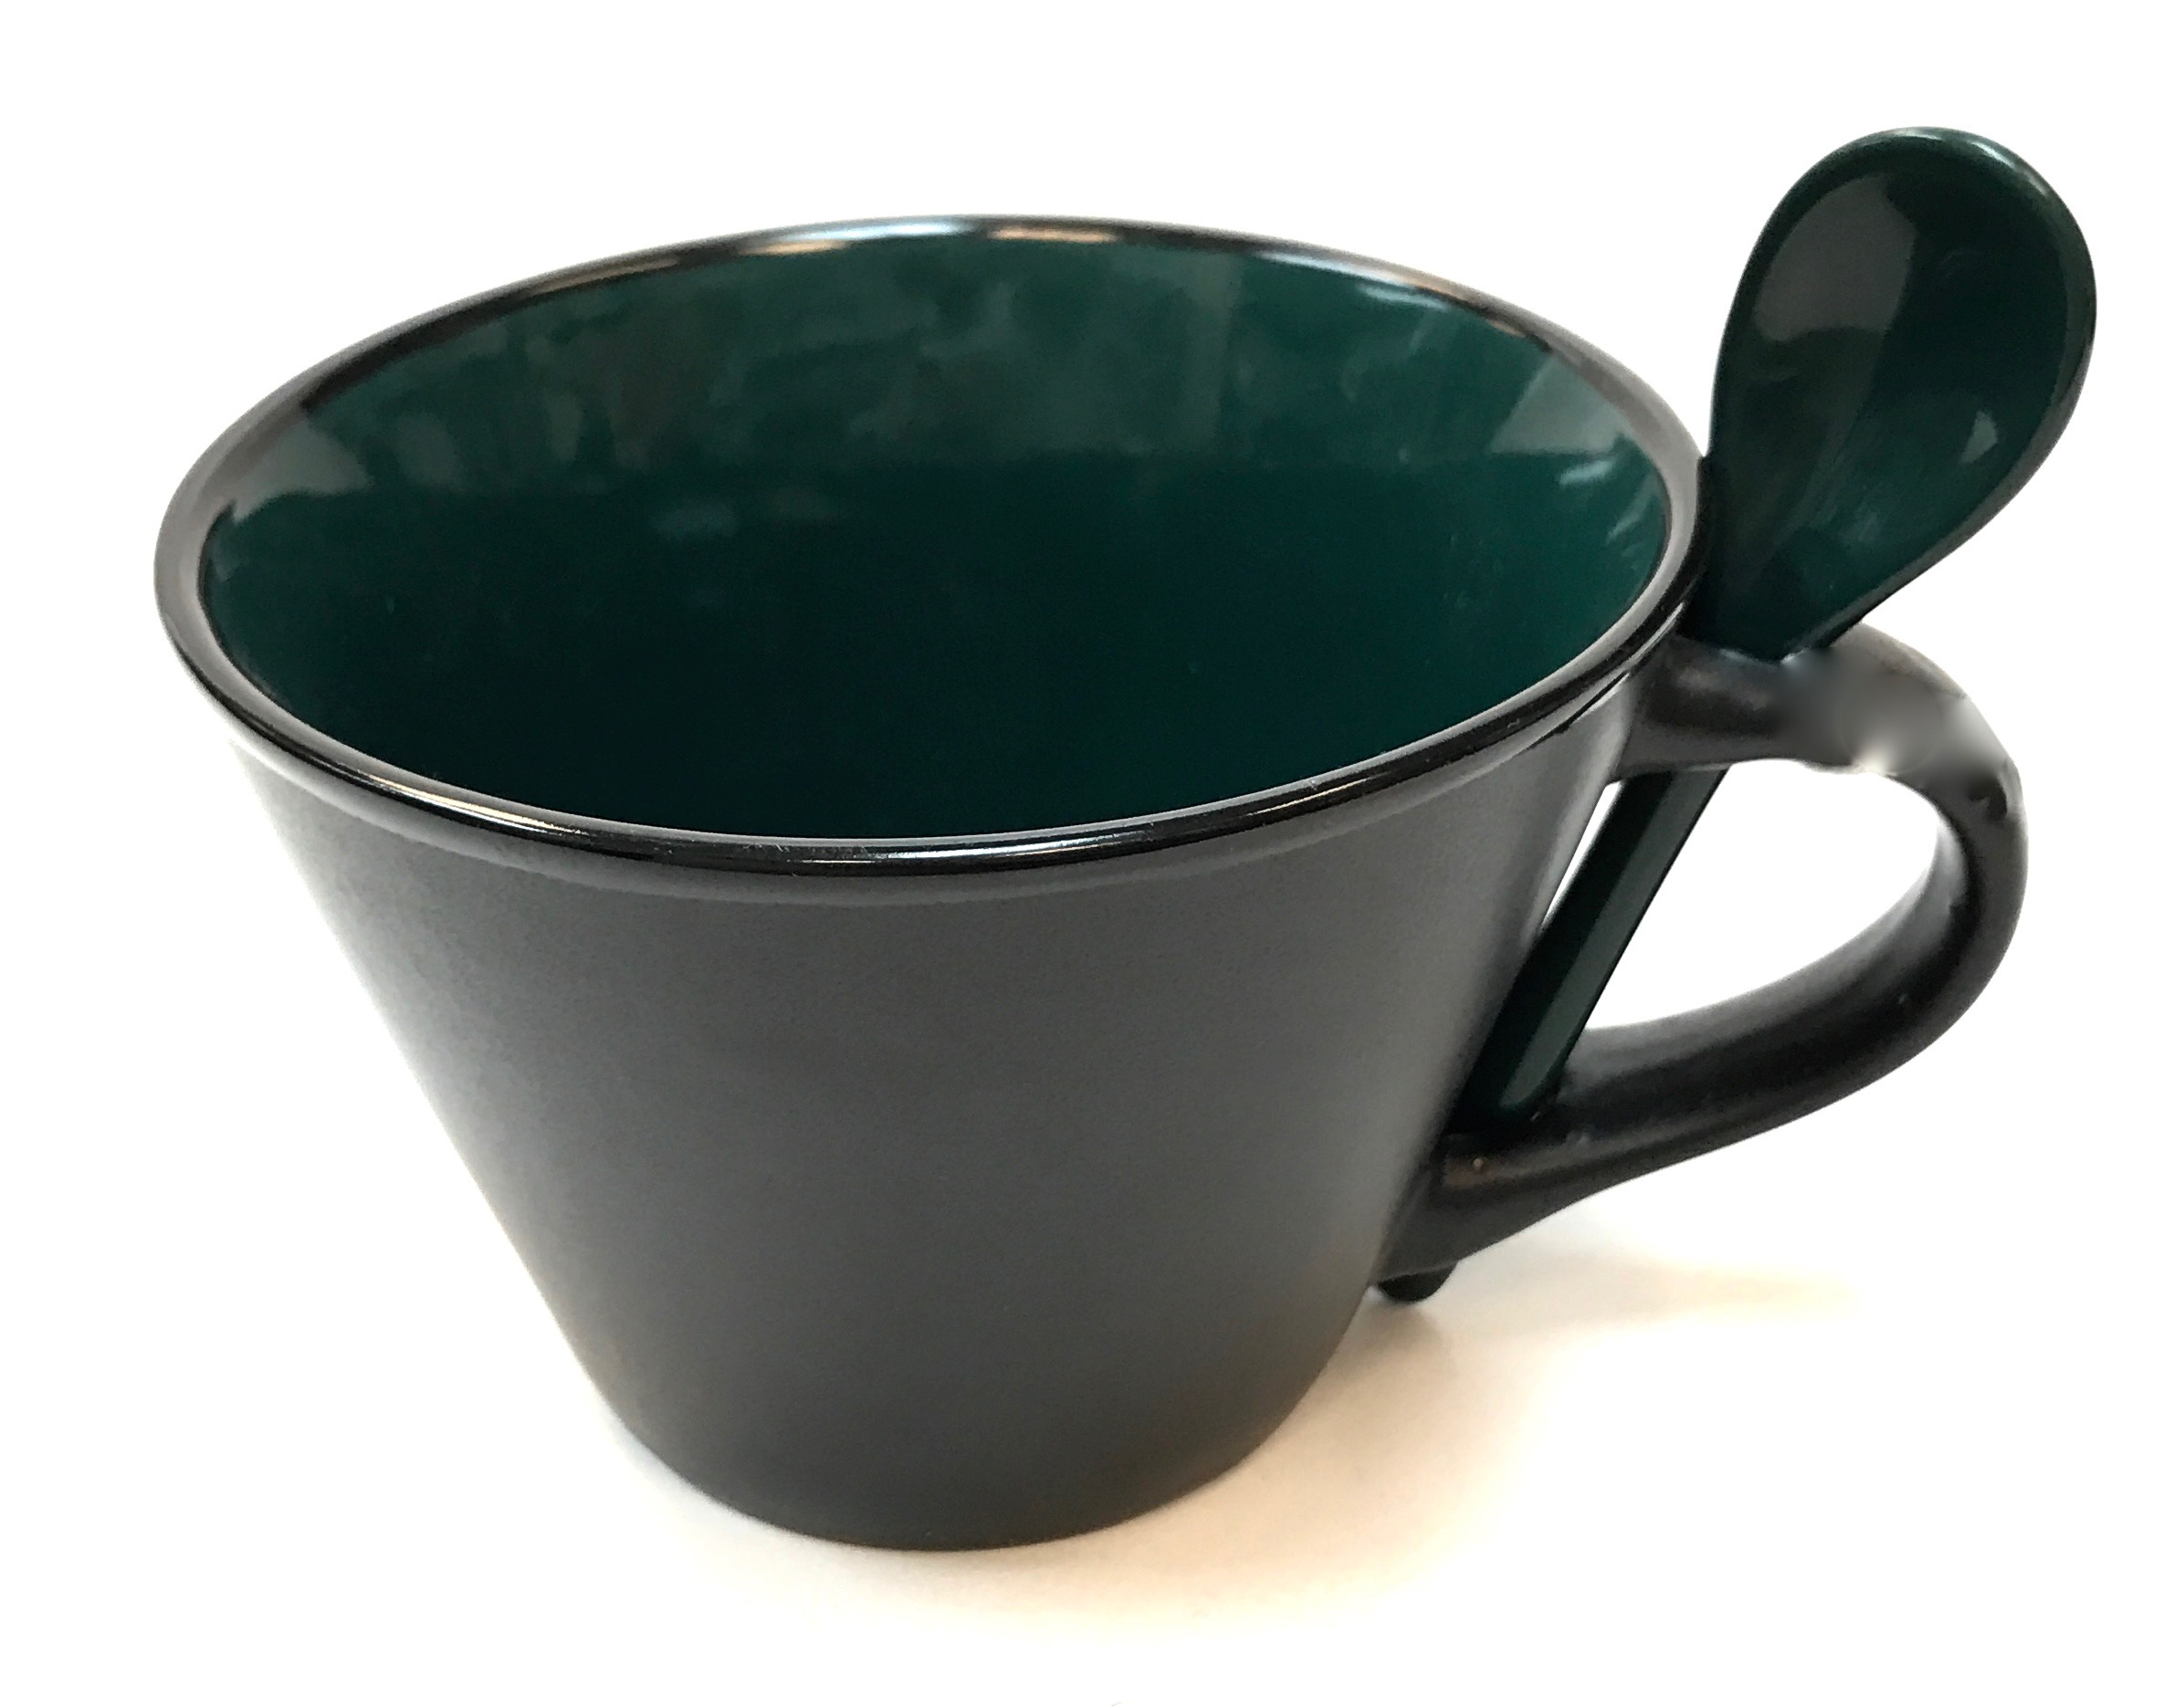 16 Oz Matte Mug W/Spoon - Green/Black